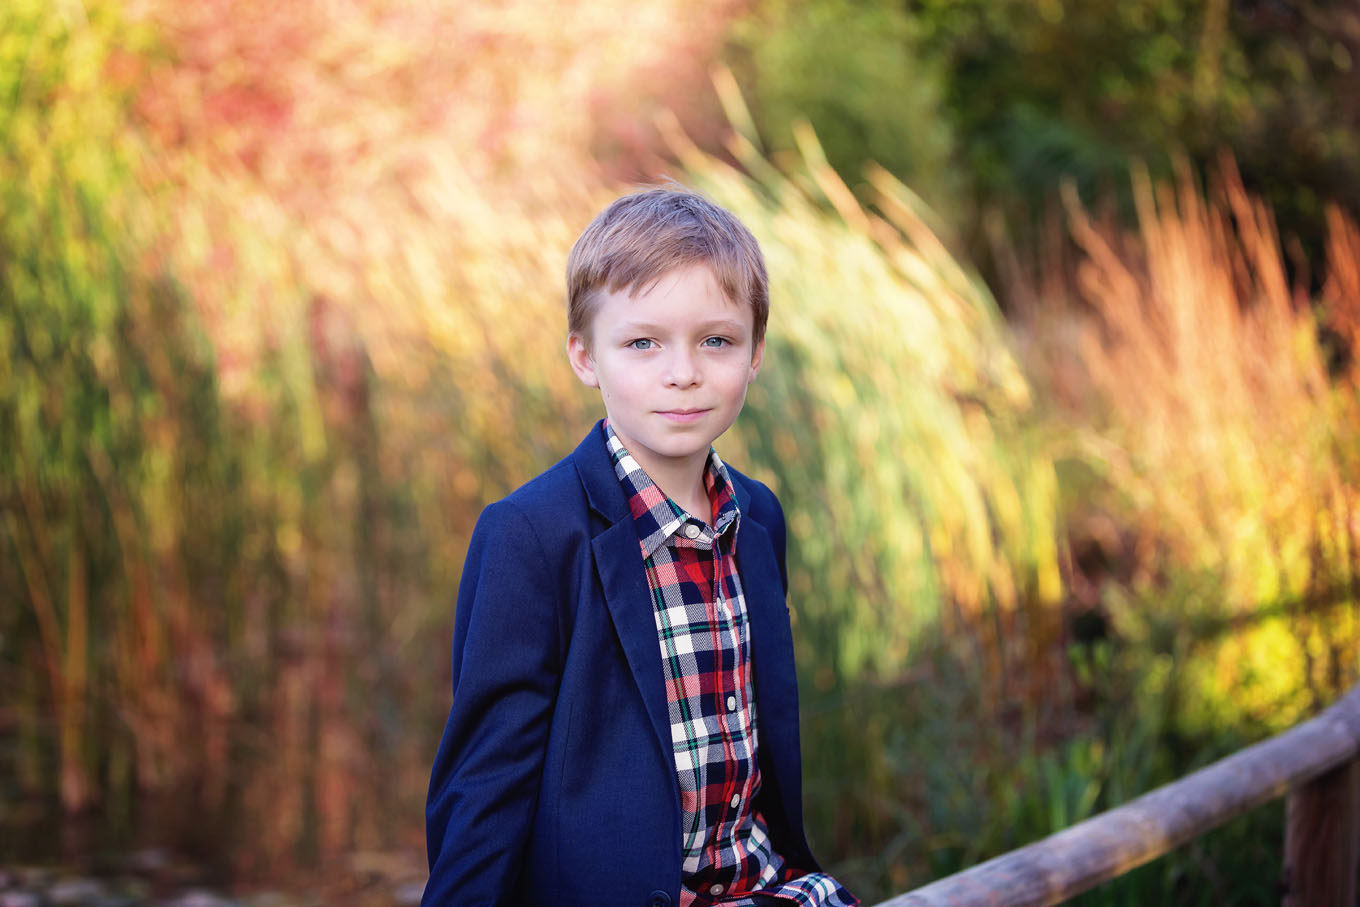 Summer outdoor portrait of a boy